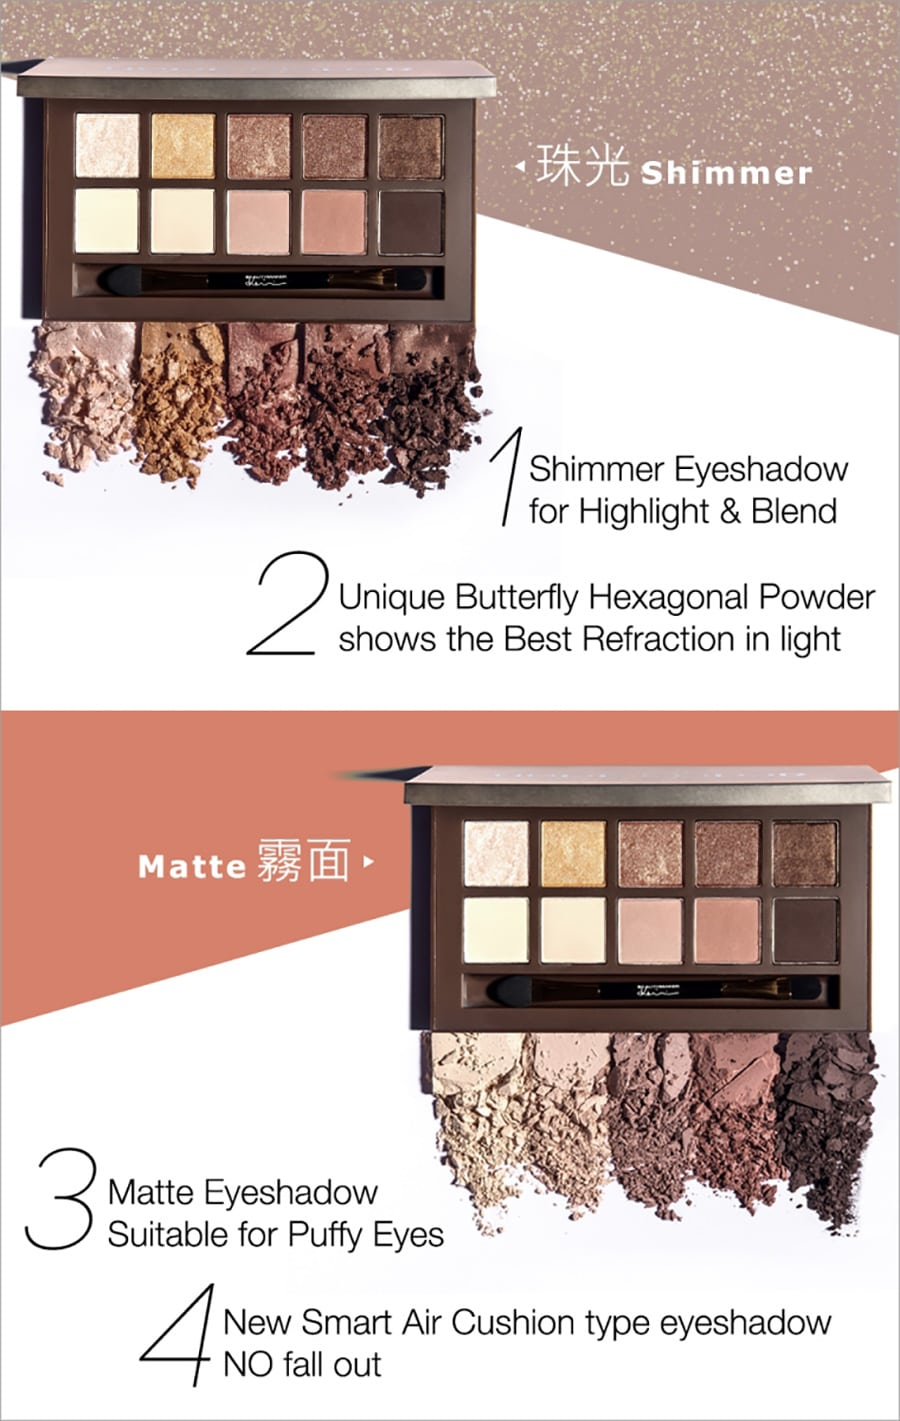 Duo Texture Eyeshadow Palette - Product Benefits